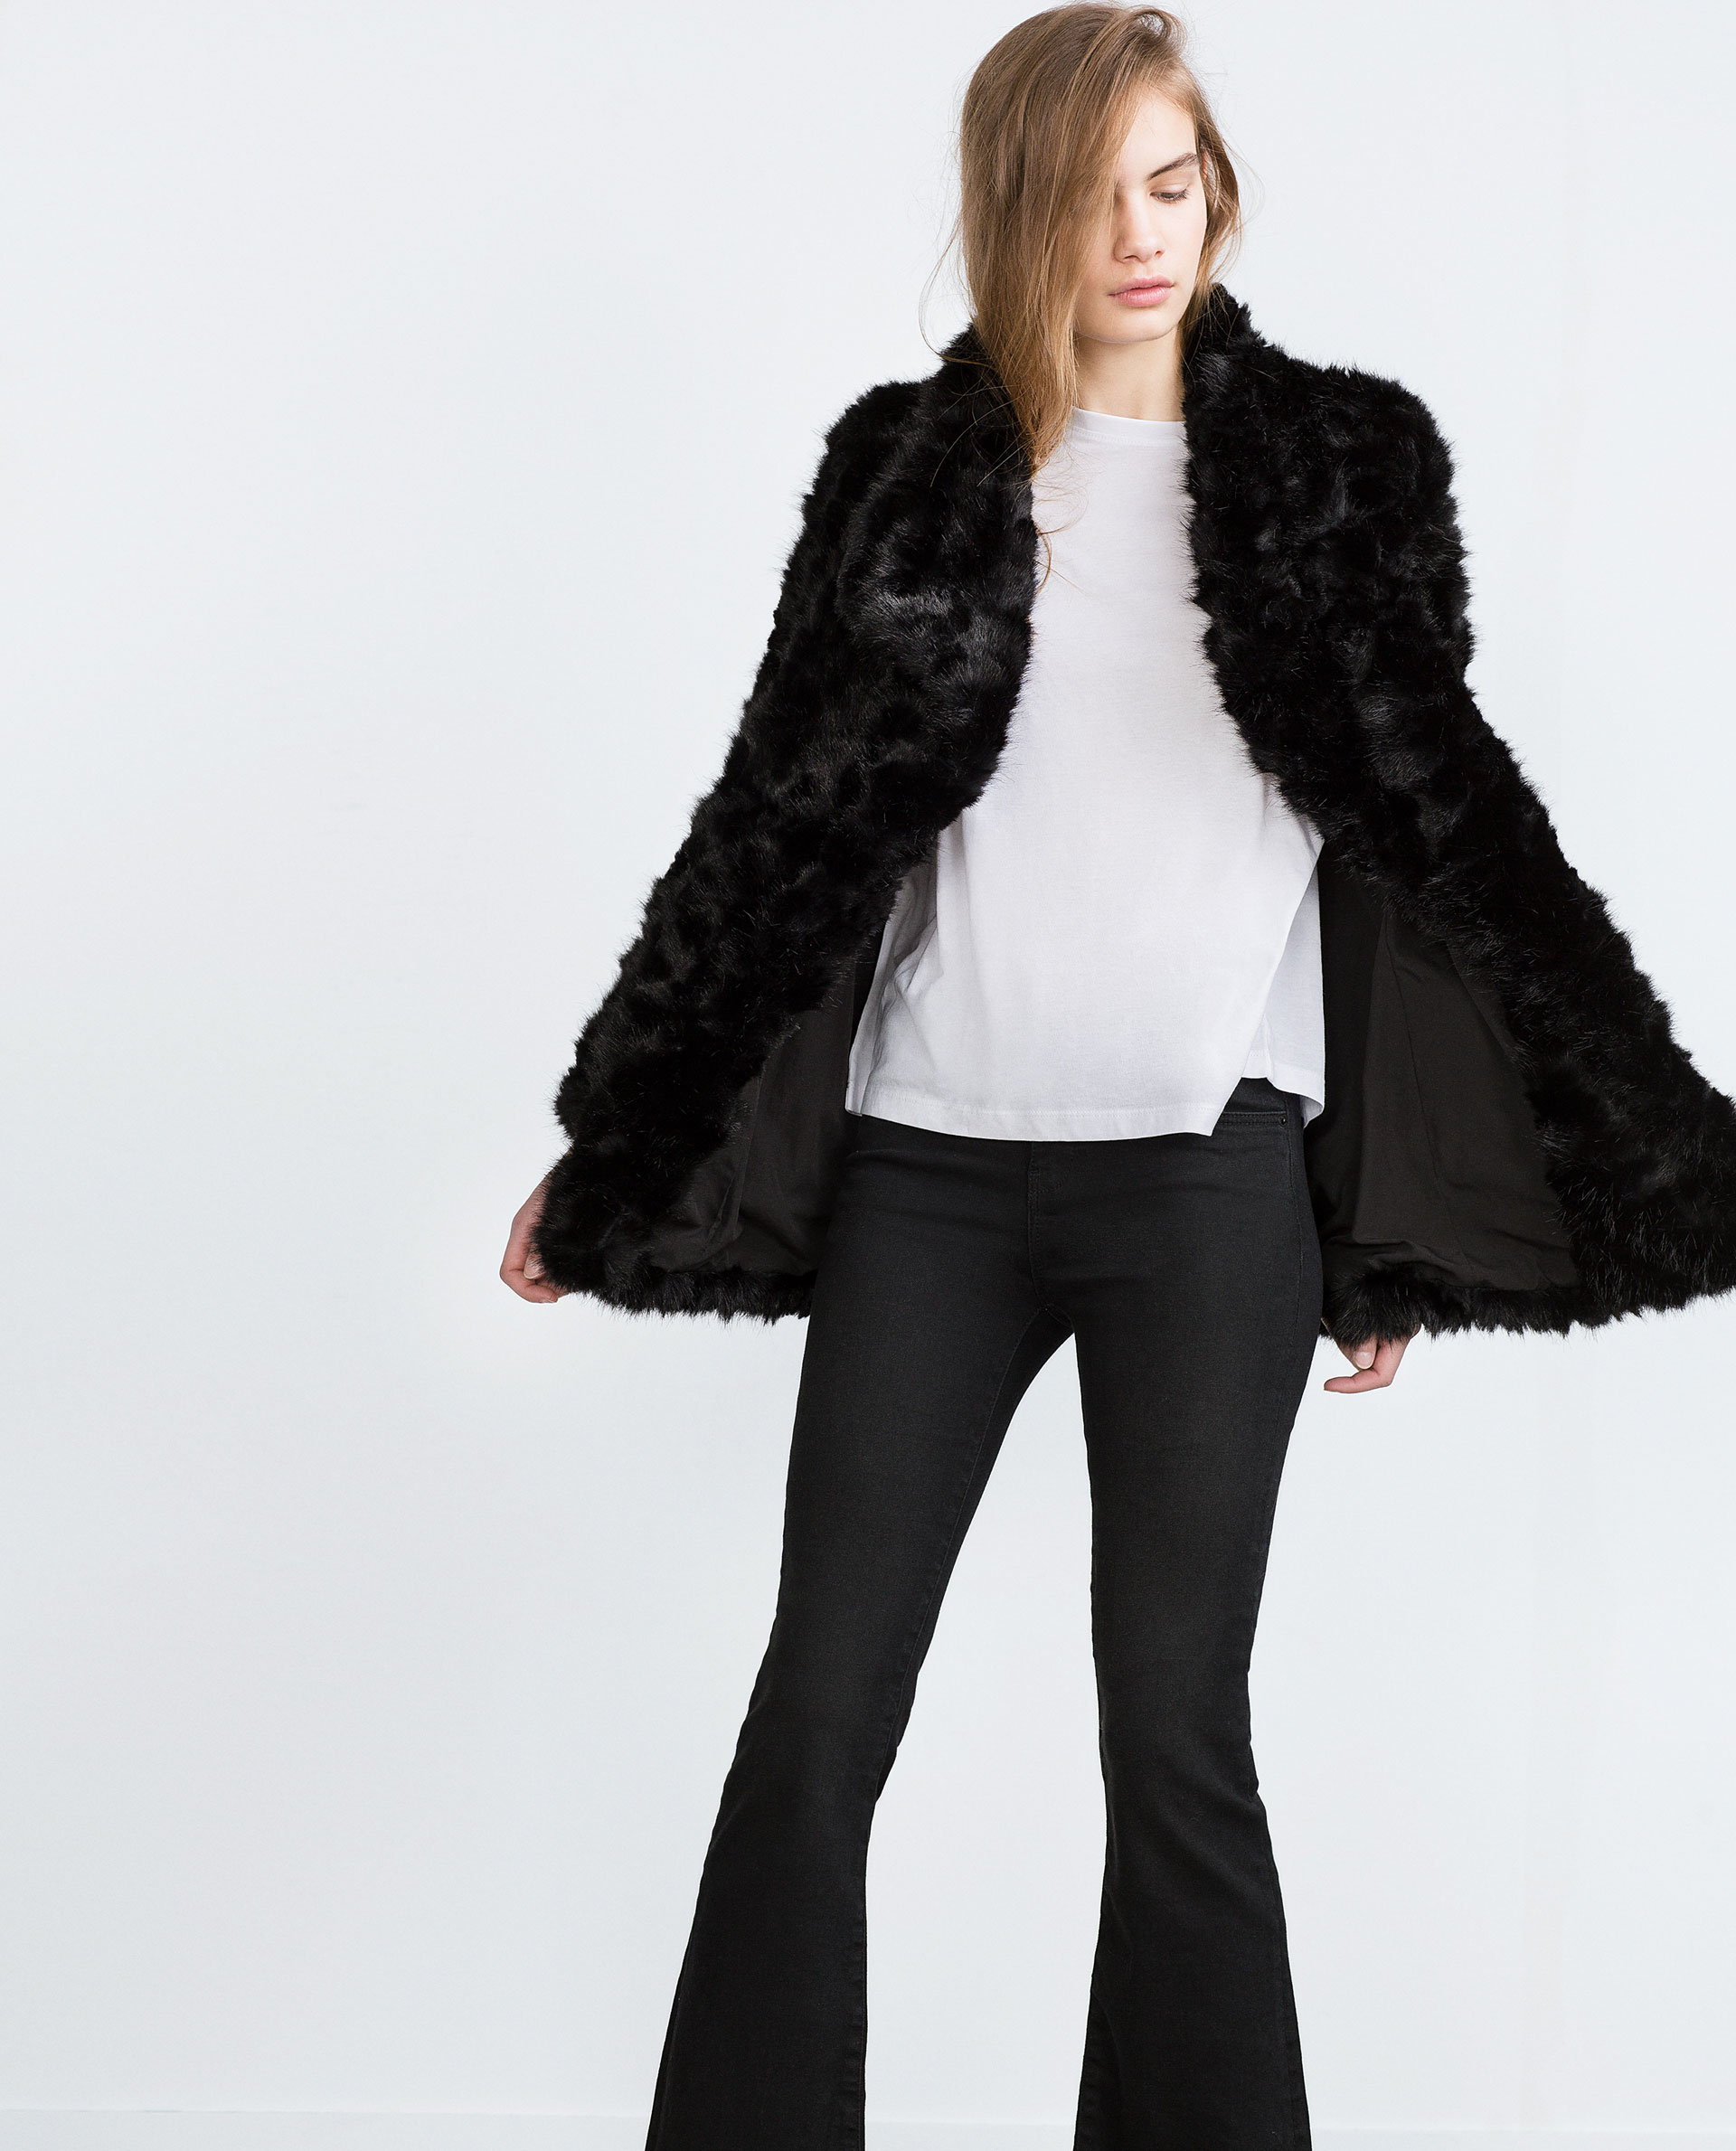 Zara Faux Fur Coat in Black | Lyst